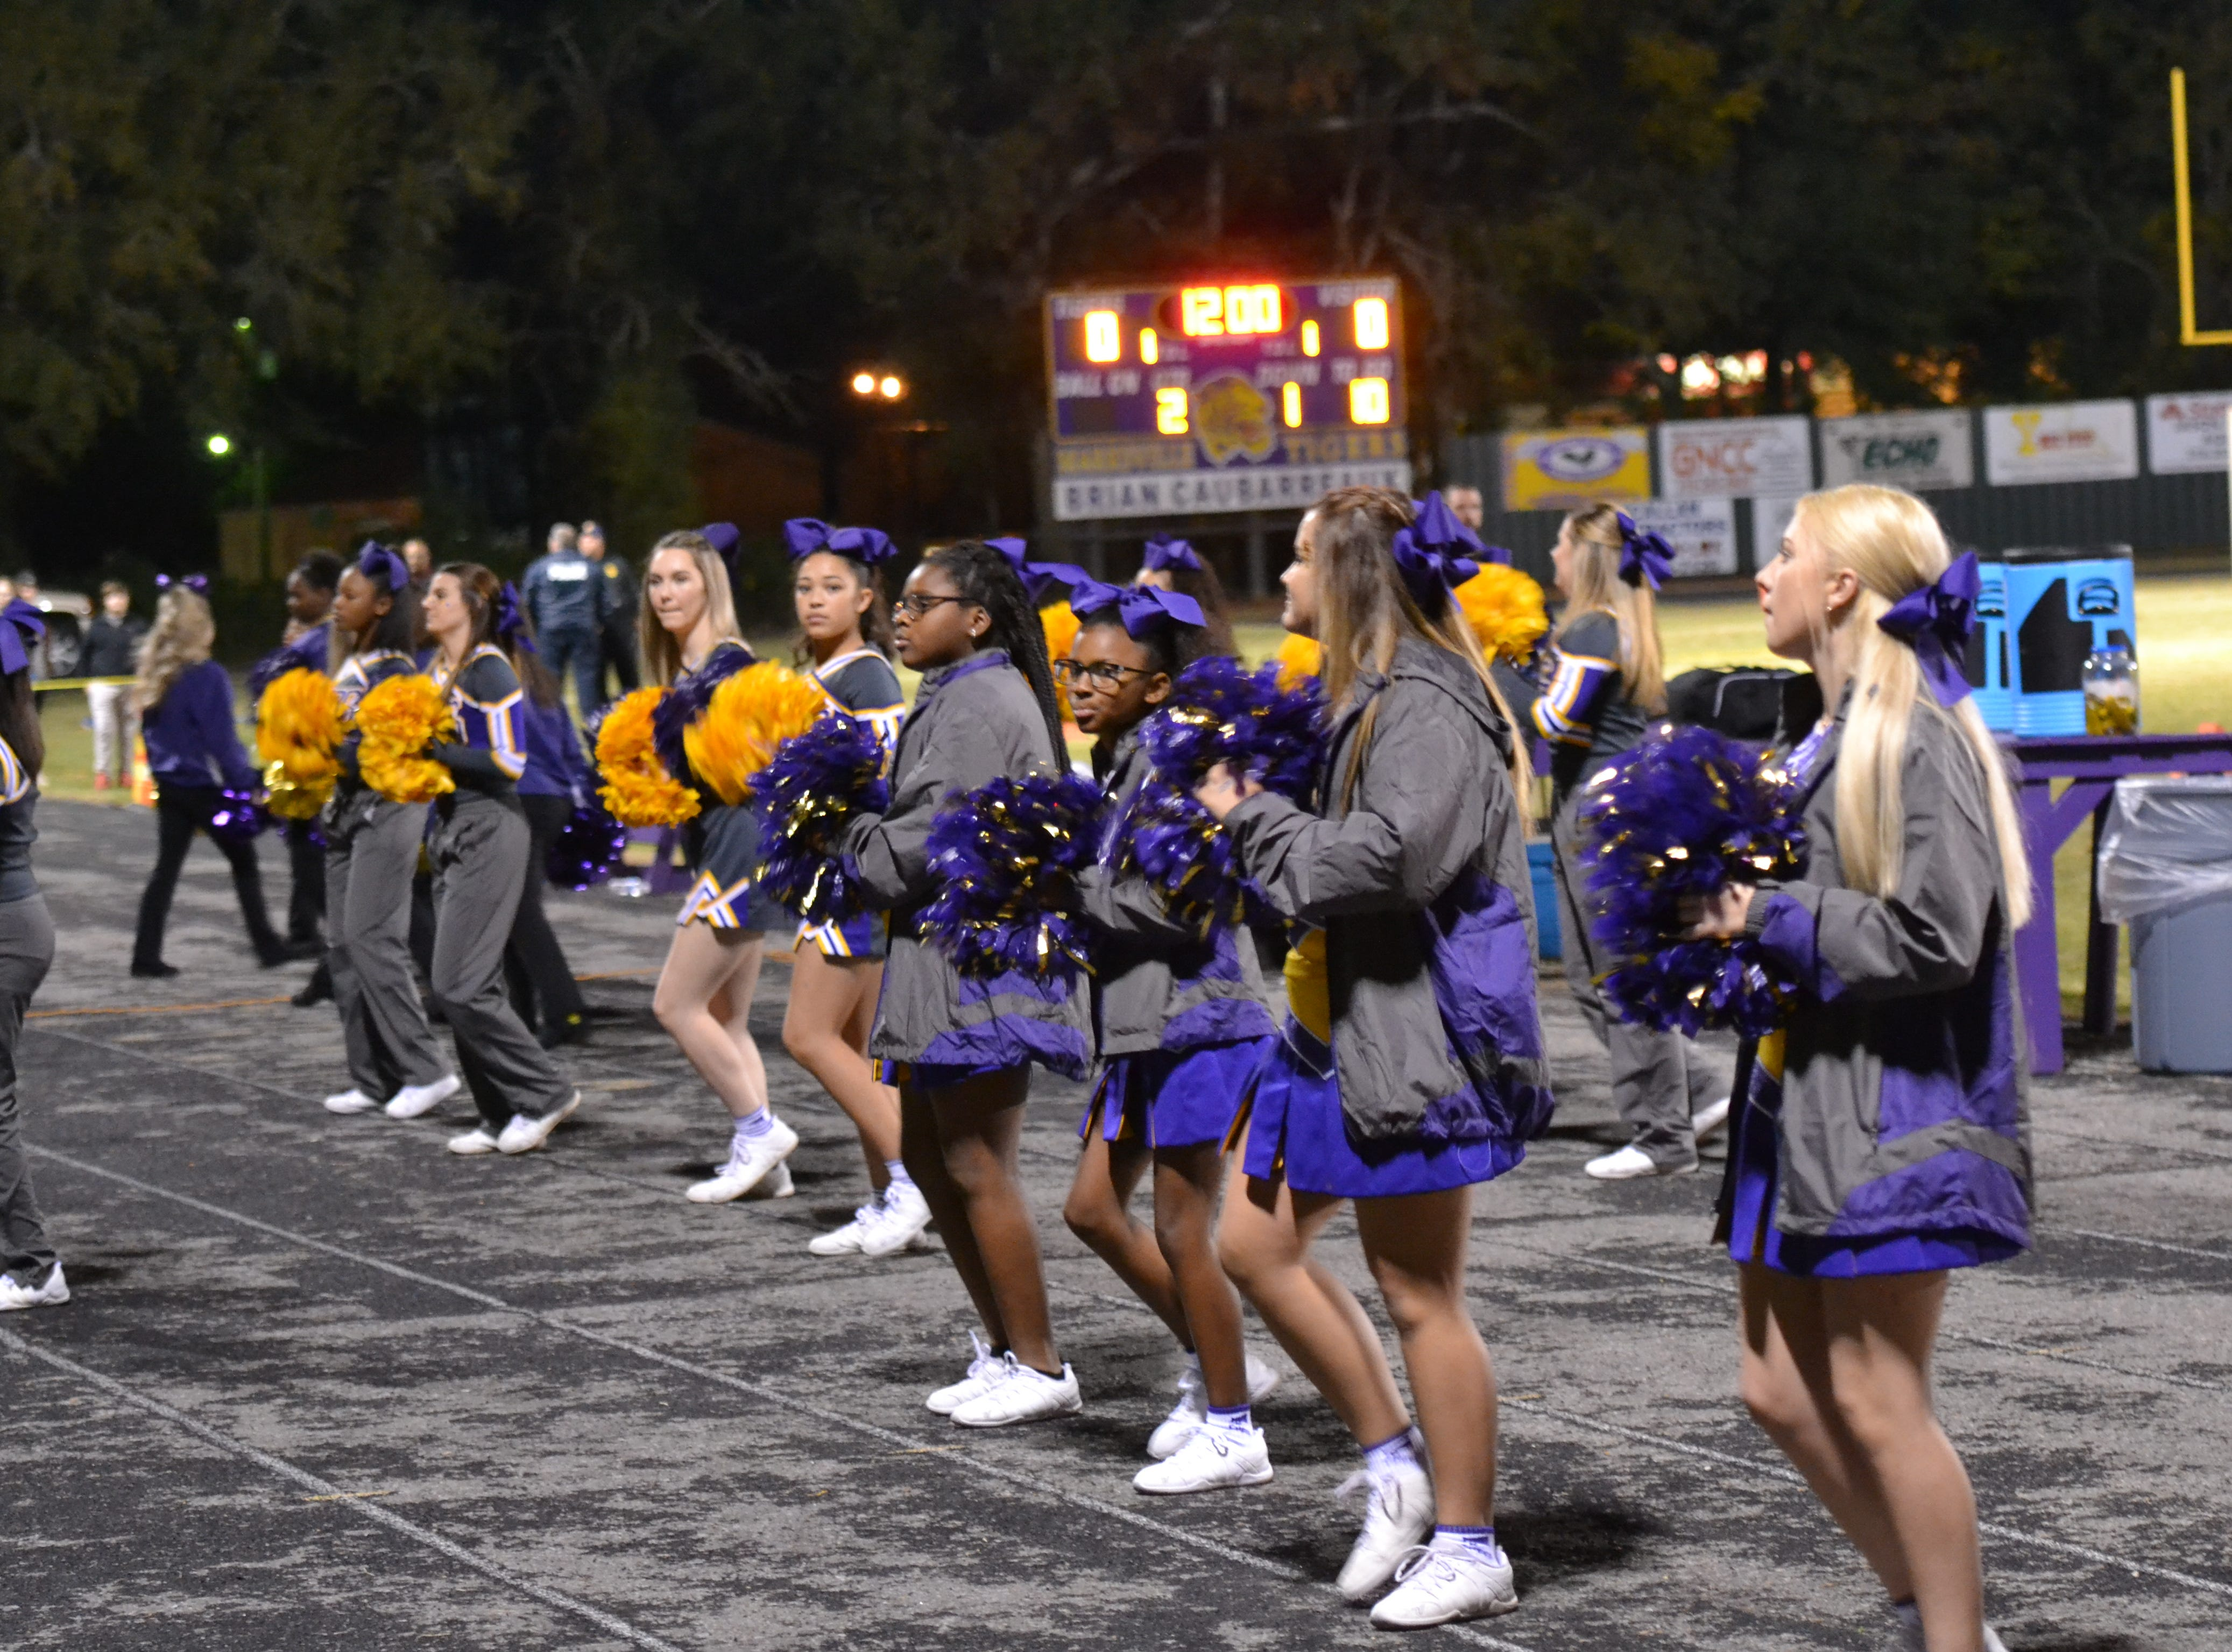 Marksville cheerleaders fire up the crowd. Marksville and Caldwell met in the regular season finale Friday night with Caldwell edging Marksville 13-8.